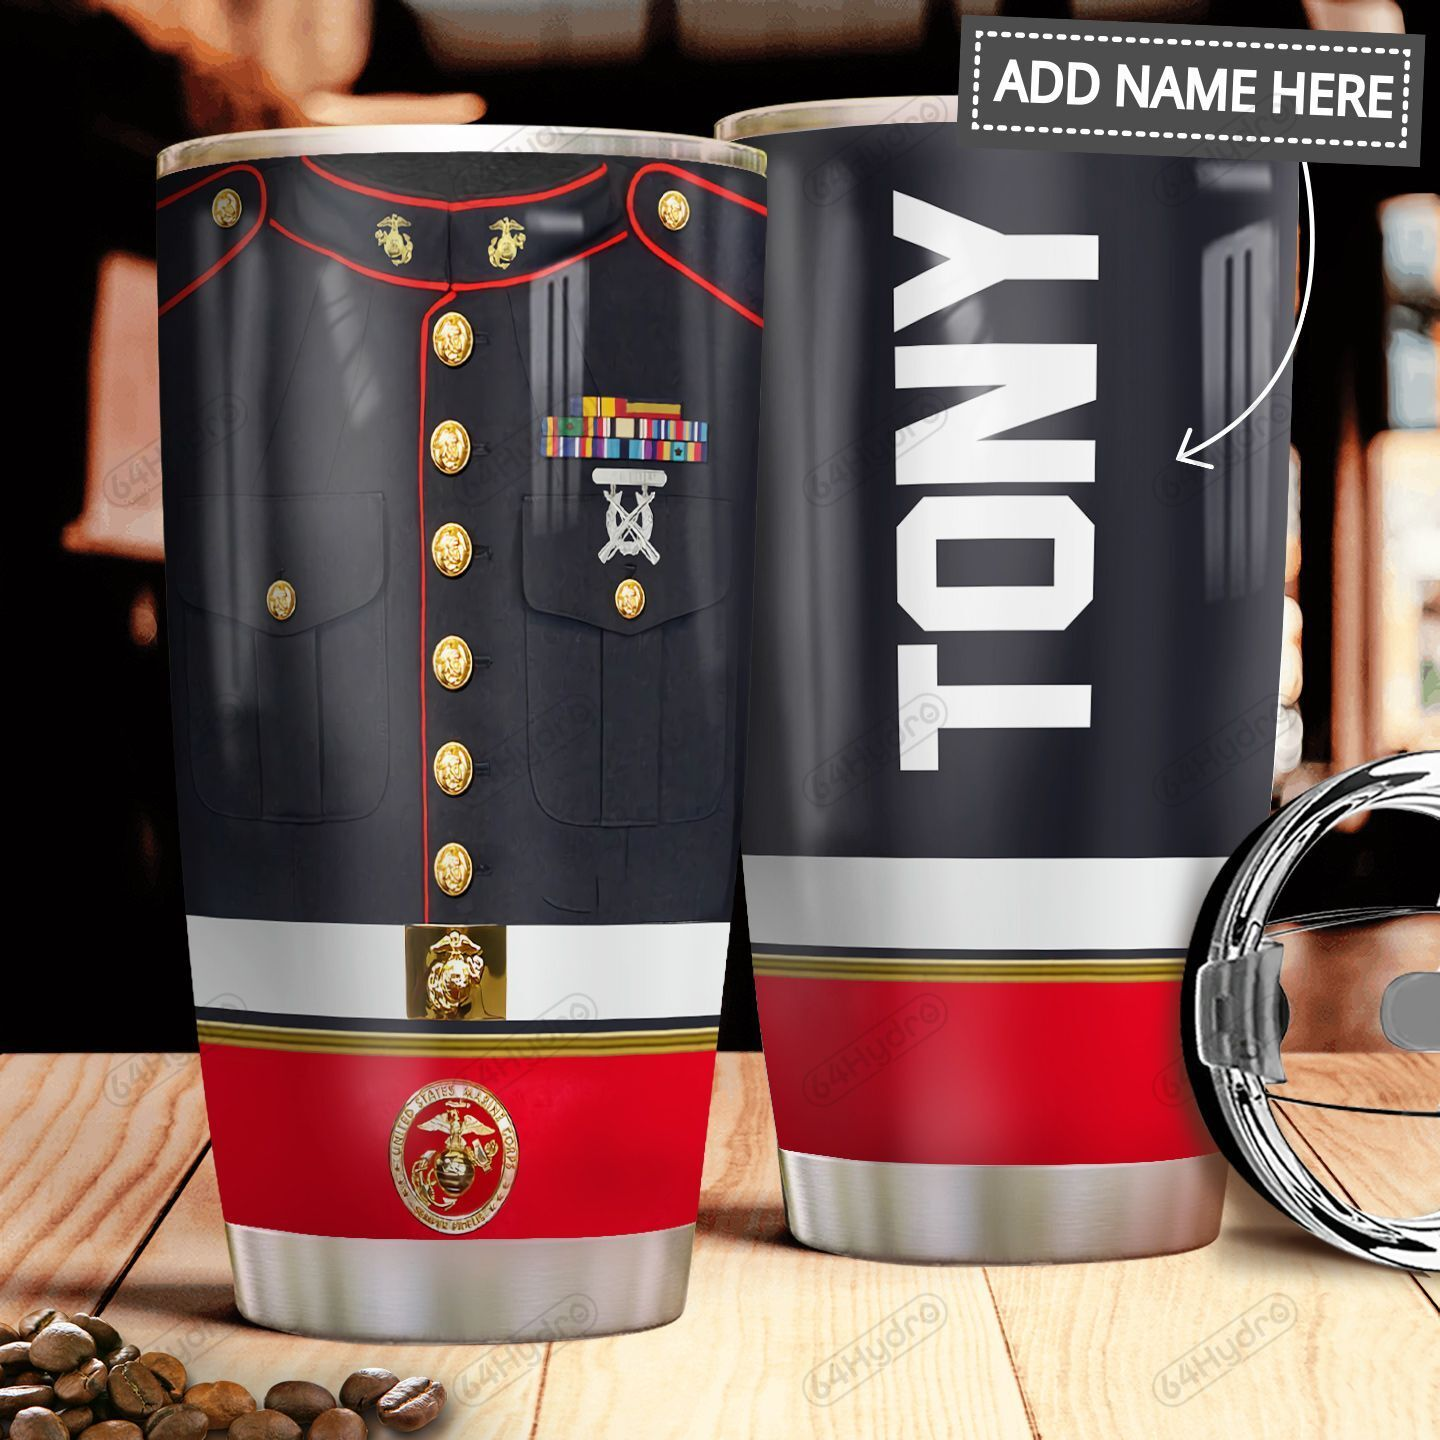 Marine Uniform Personalized MDA0911006 Stainless Steel Tumbler